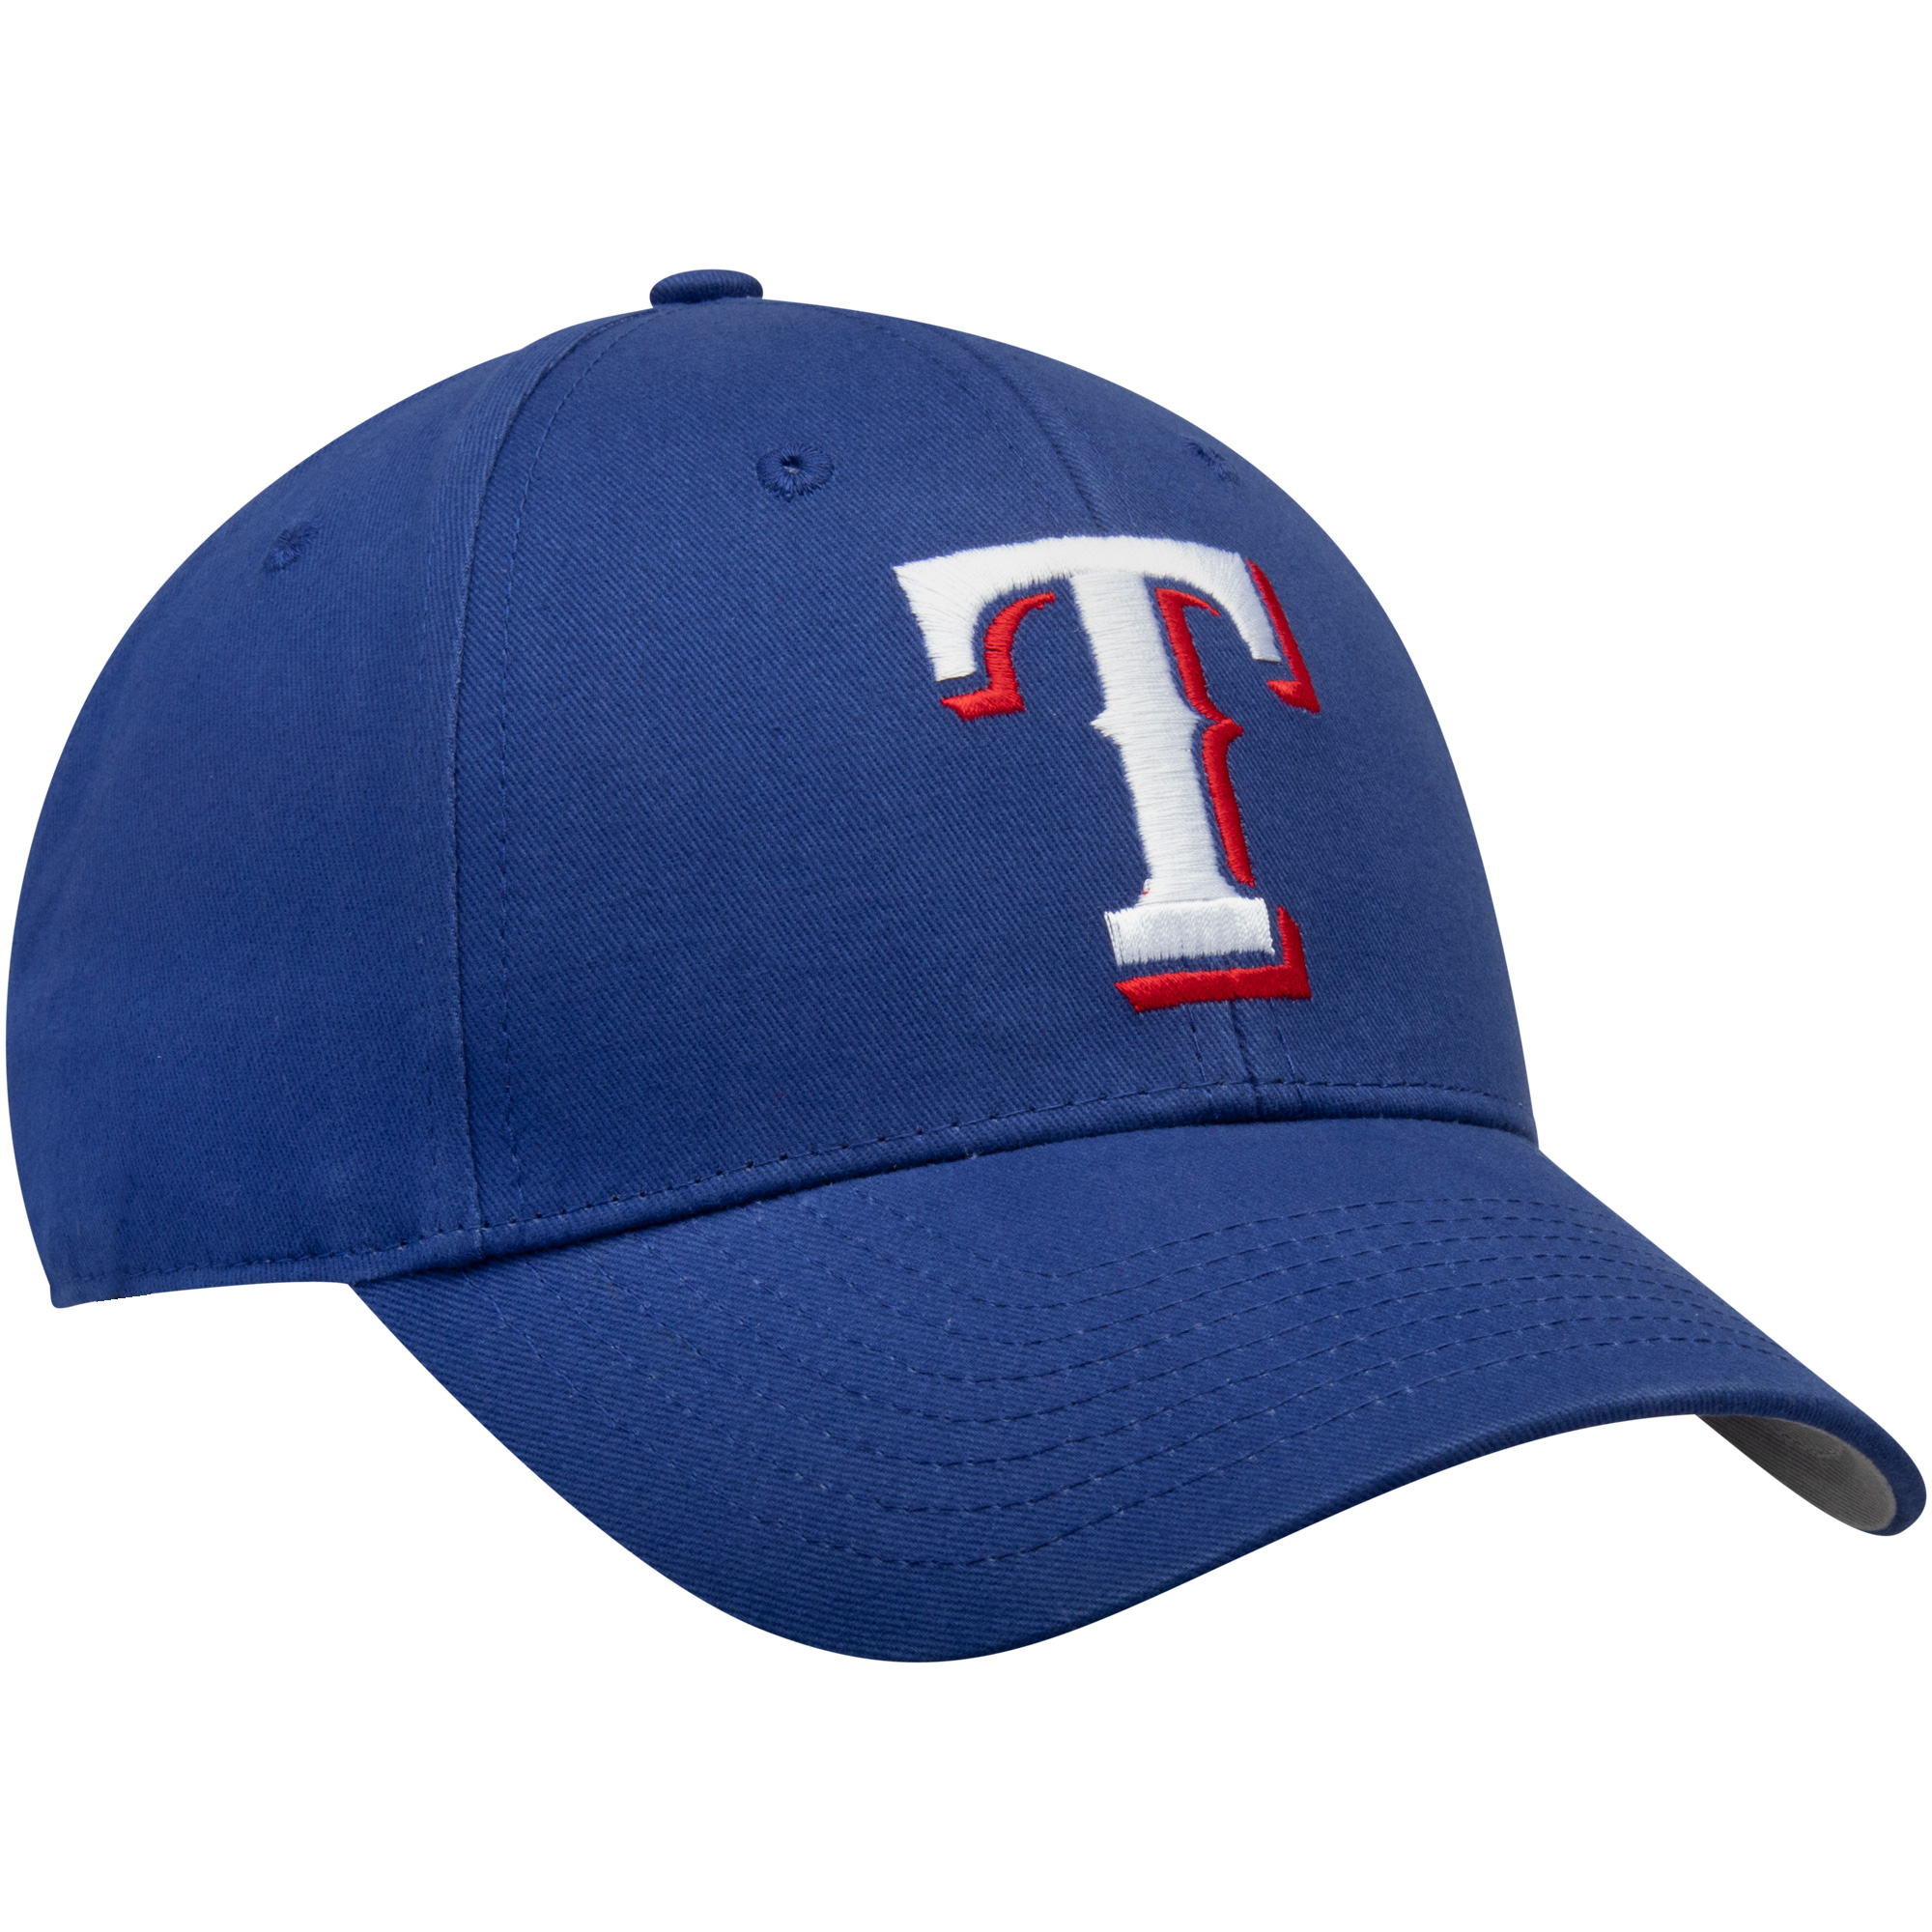 eef67b5d57f3f6 MLB Texas Rangers Basic Cap / Hat by Fan Favorite - Walmart.com